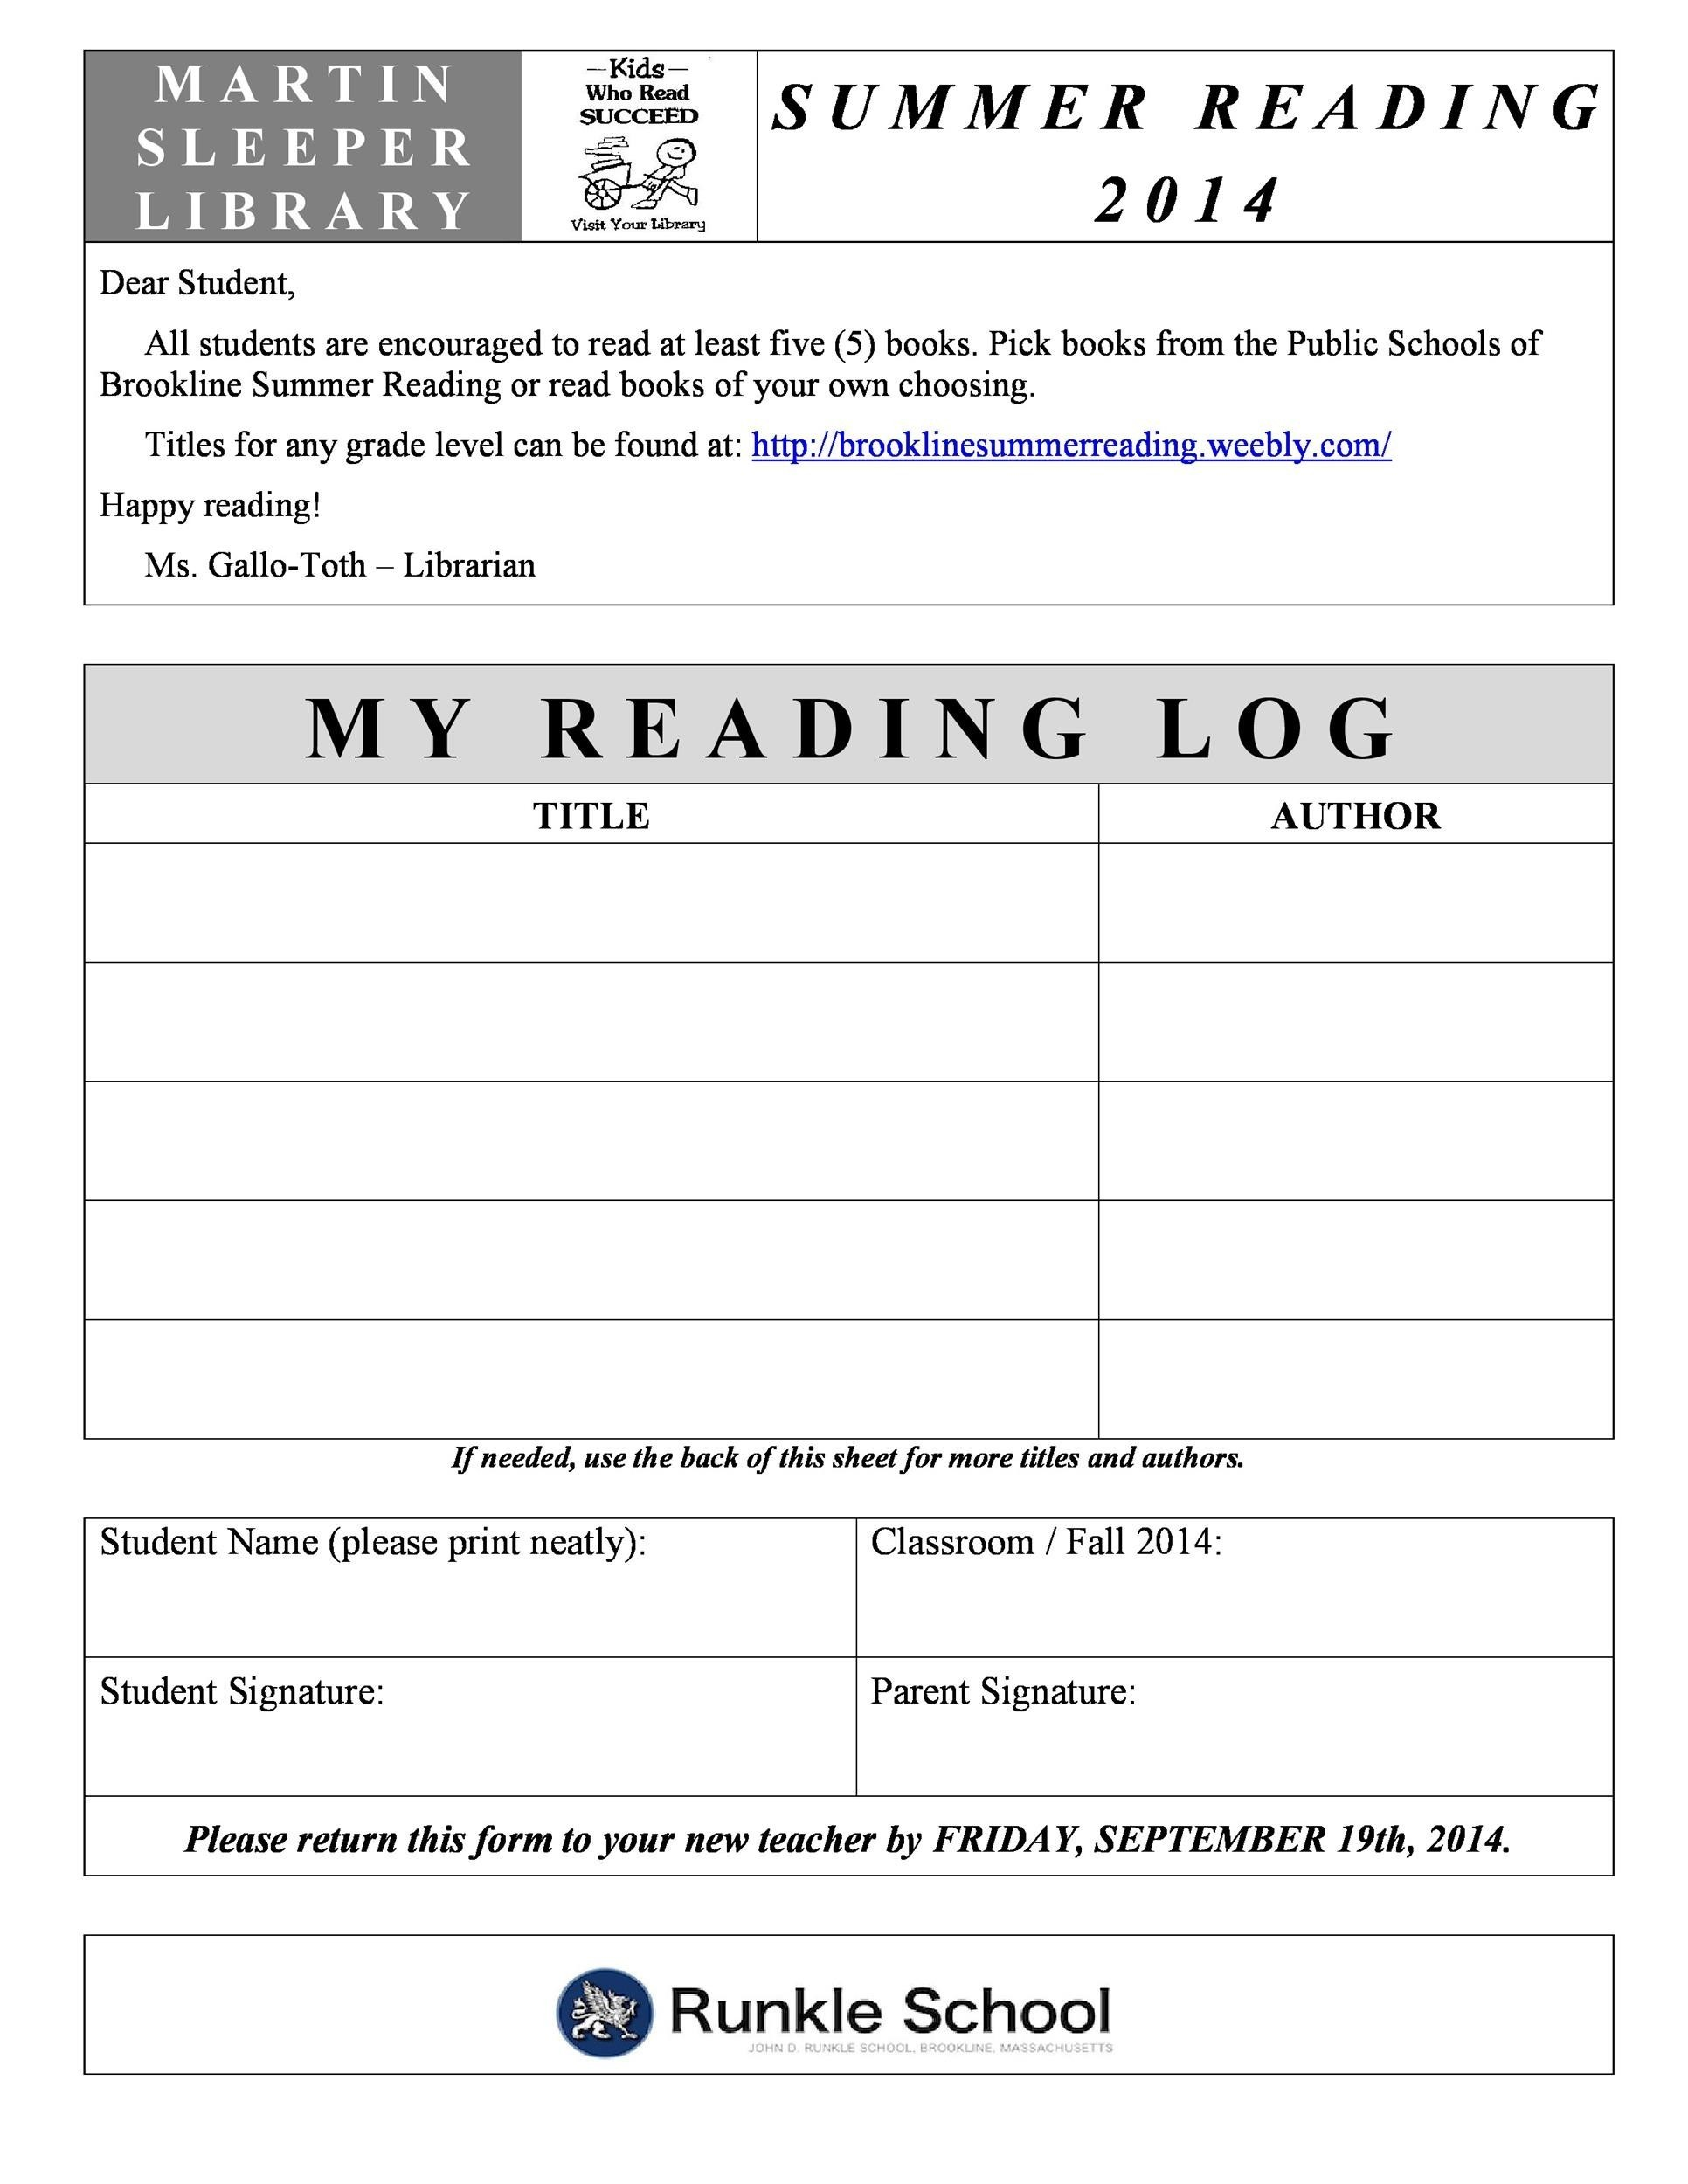 Adaptable image for reading log with summary printable